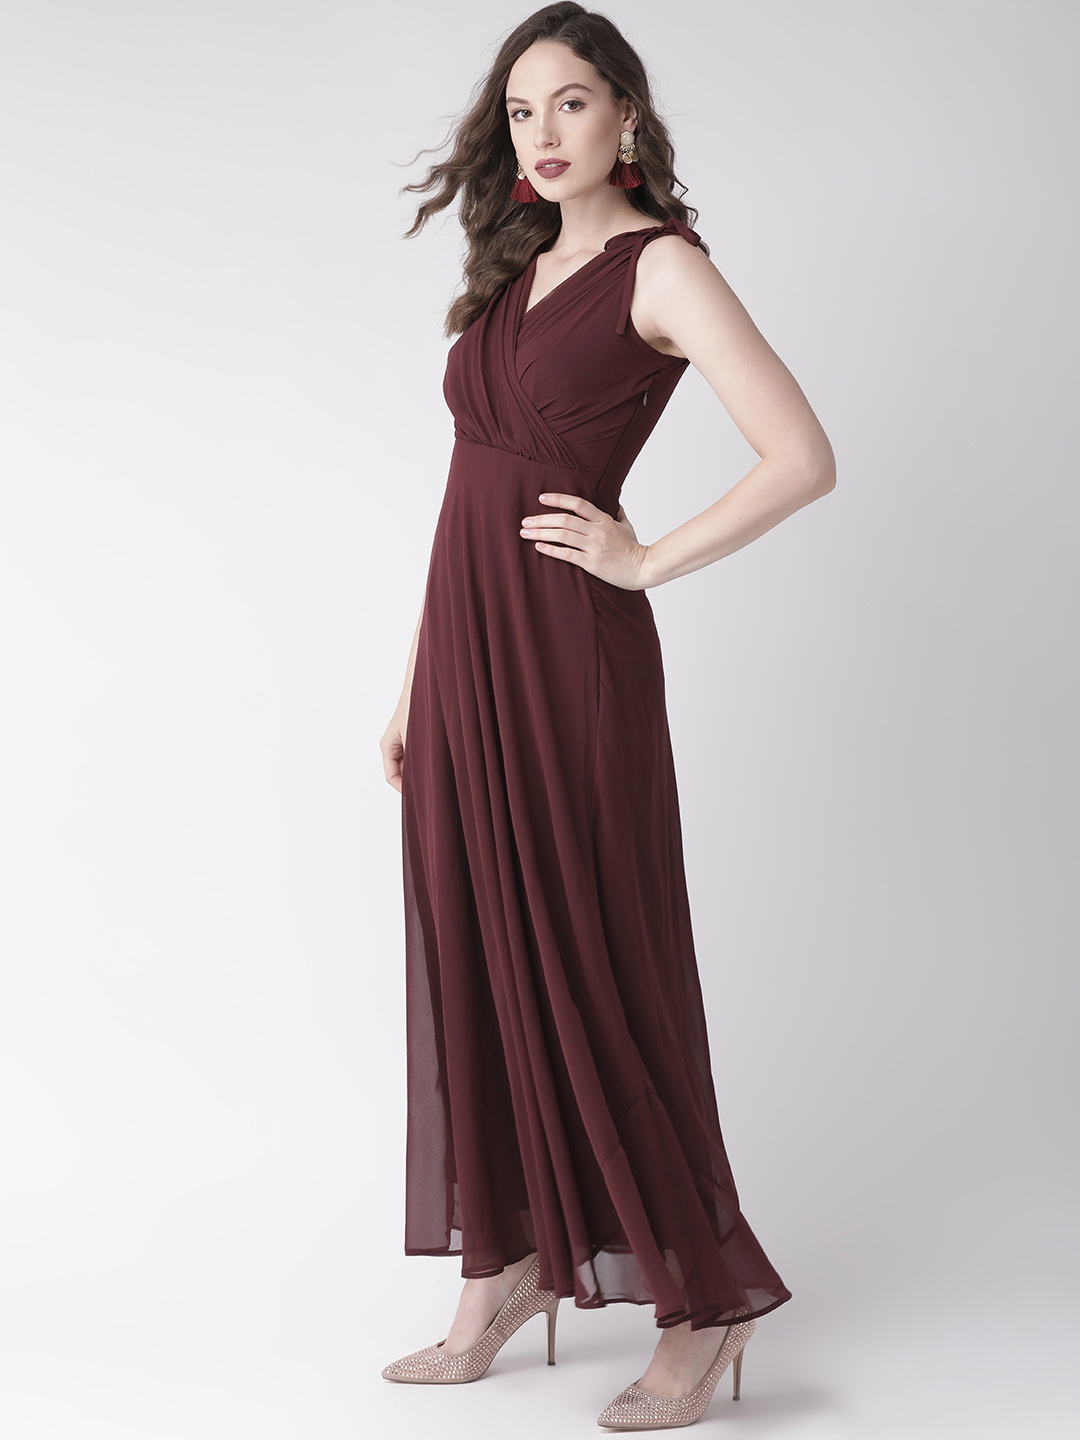 Dresses-Maroon Ready For The Royal Ball Maxi Dress4